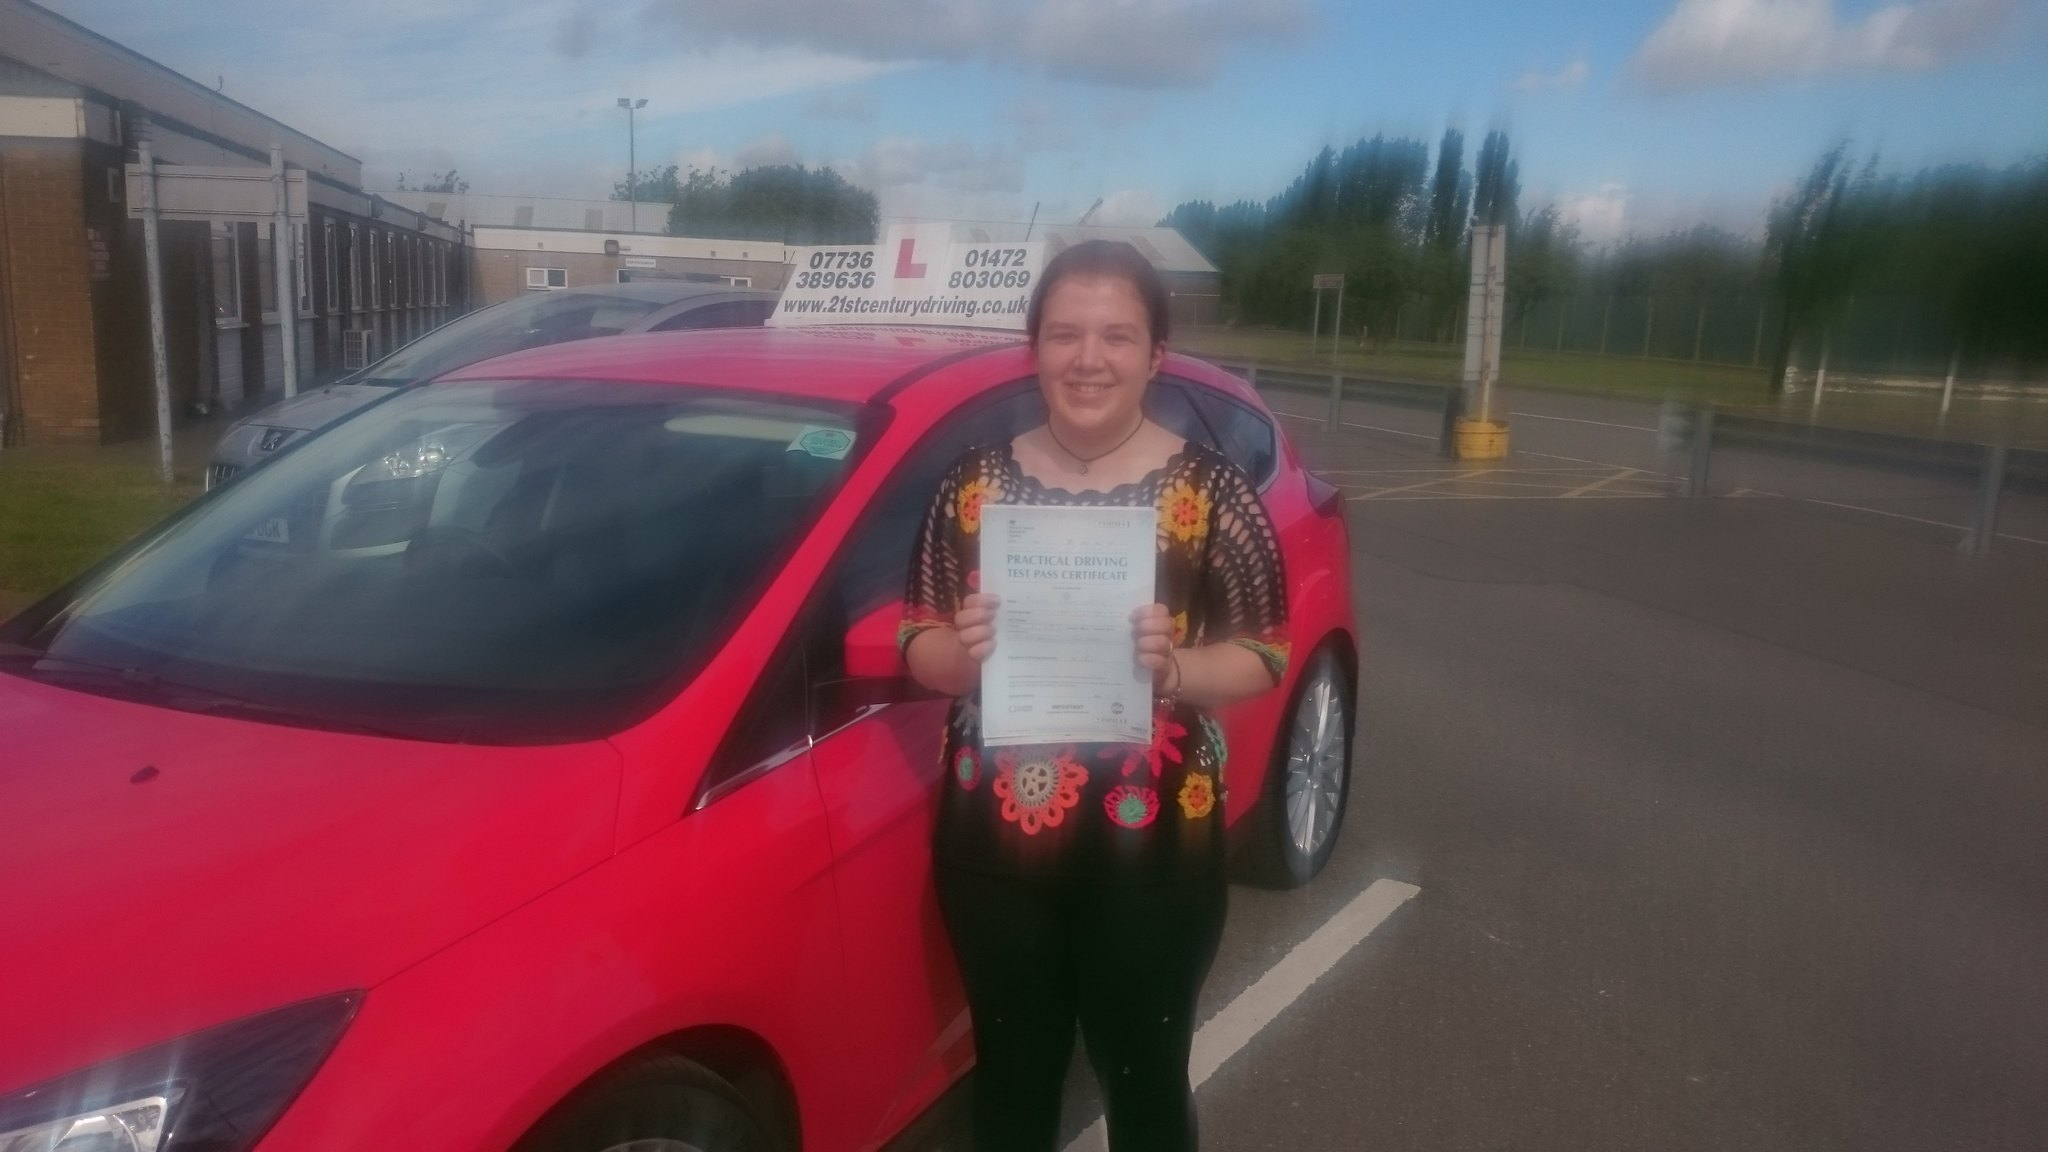 Phoebe Inglis passes her driving test in Grimsby after taking her lessons with 21st Century Driving